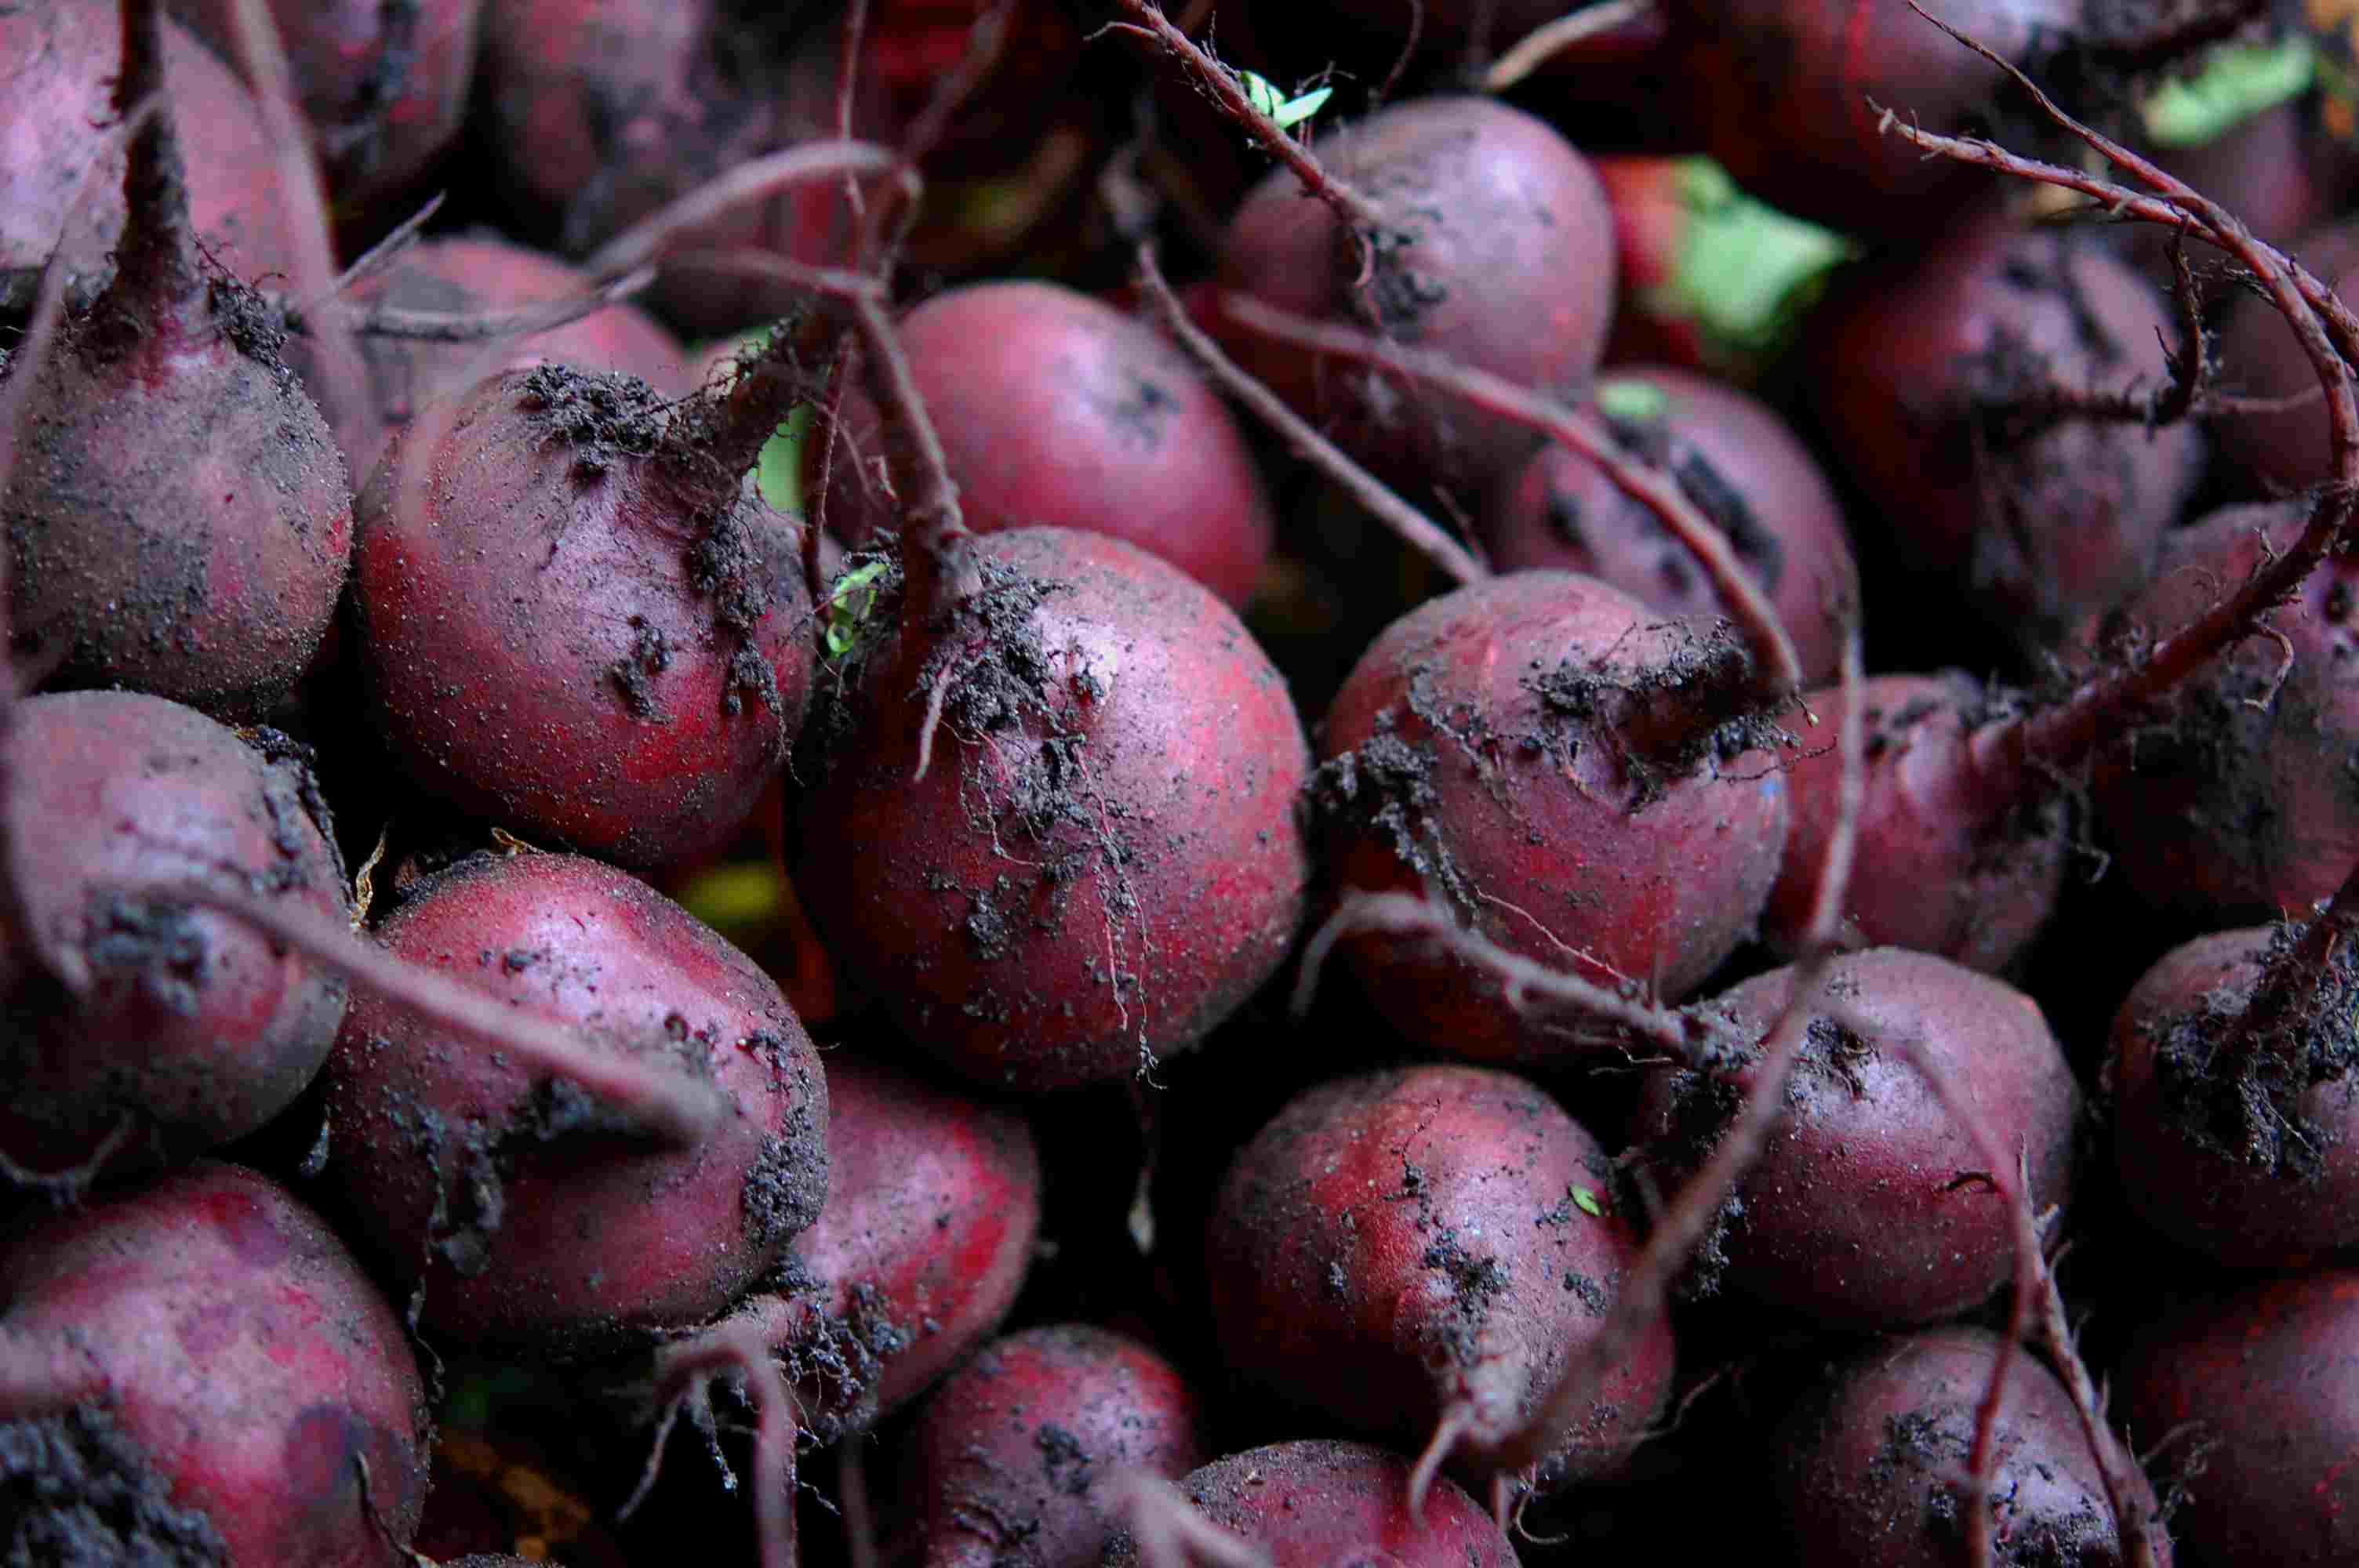 Pile of Beets for Sale